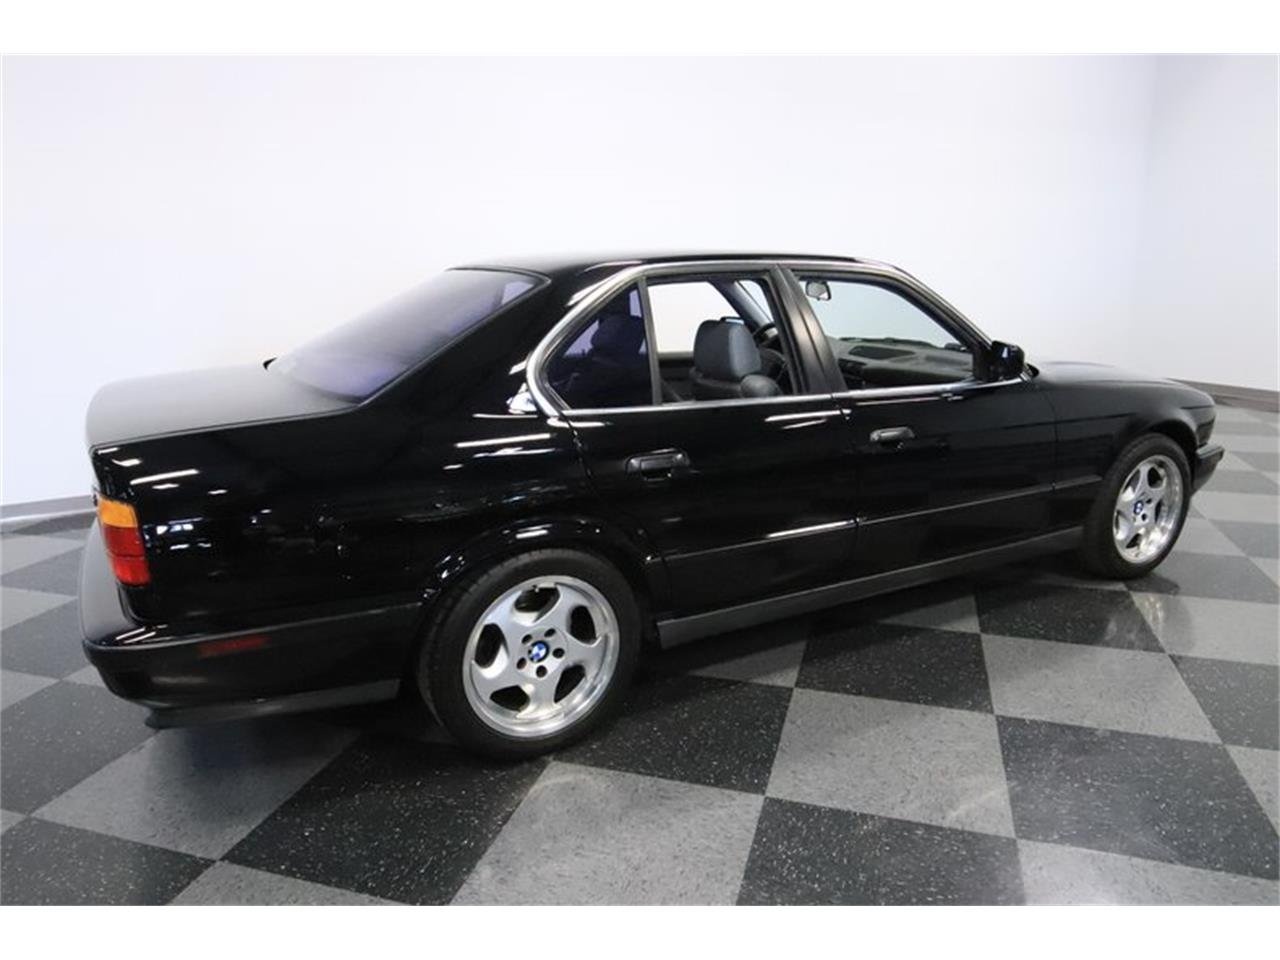 Large Picture of '91 BMW M5 located in Arizona - $31,995.00 - PUPZ